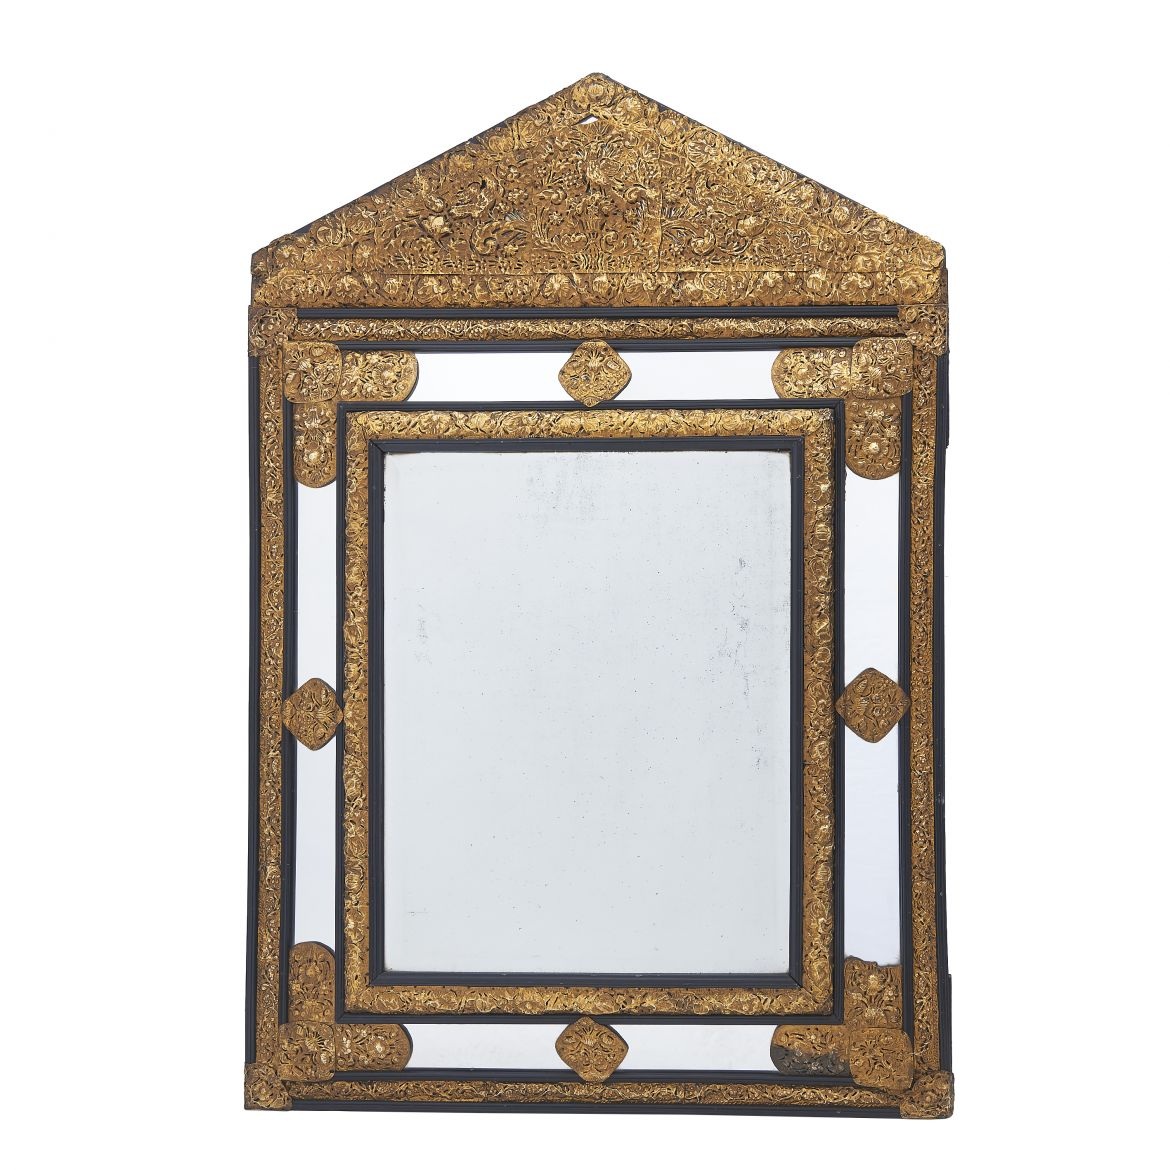 Dutch Brass Repoussé Cushion Mirror